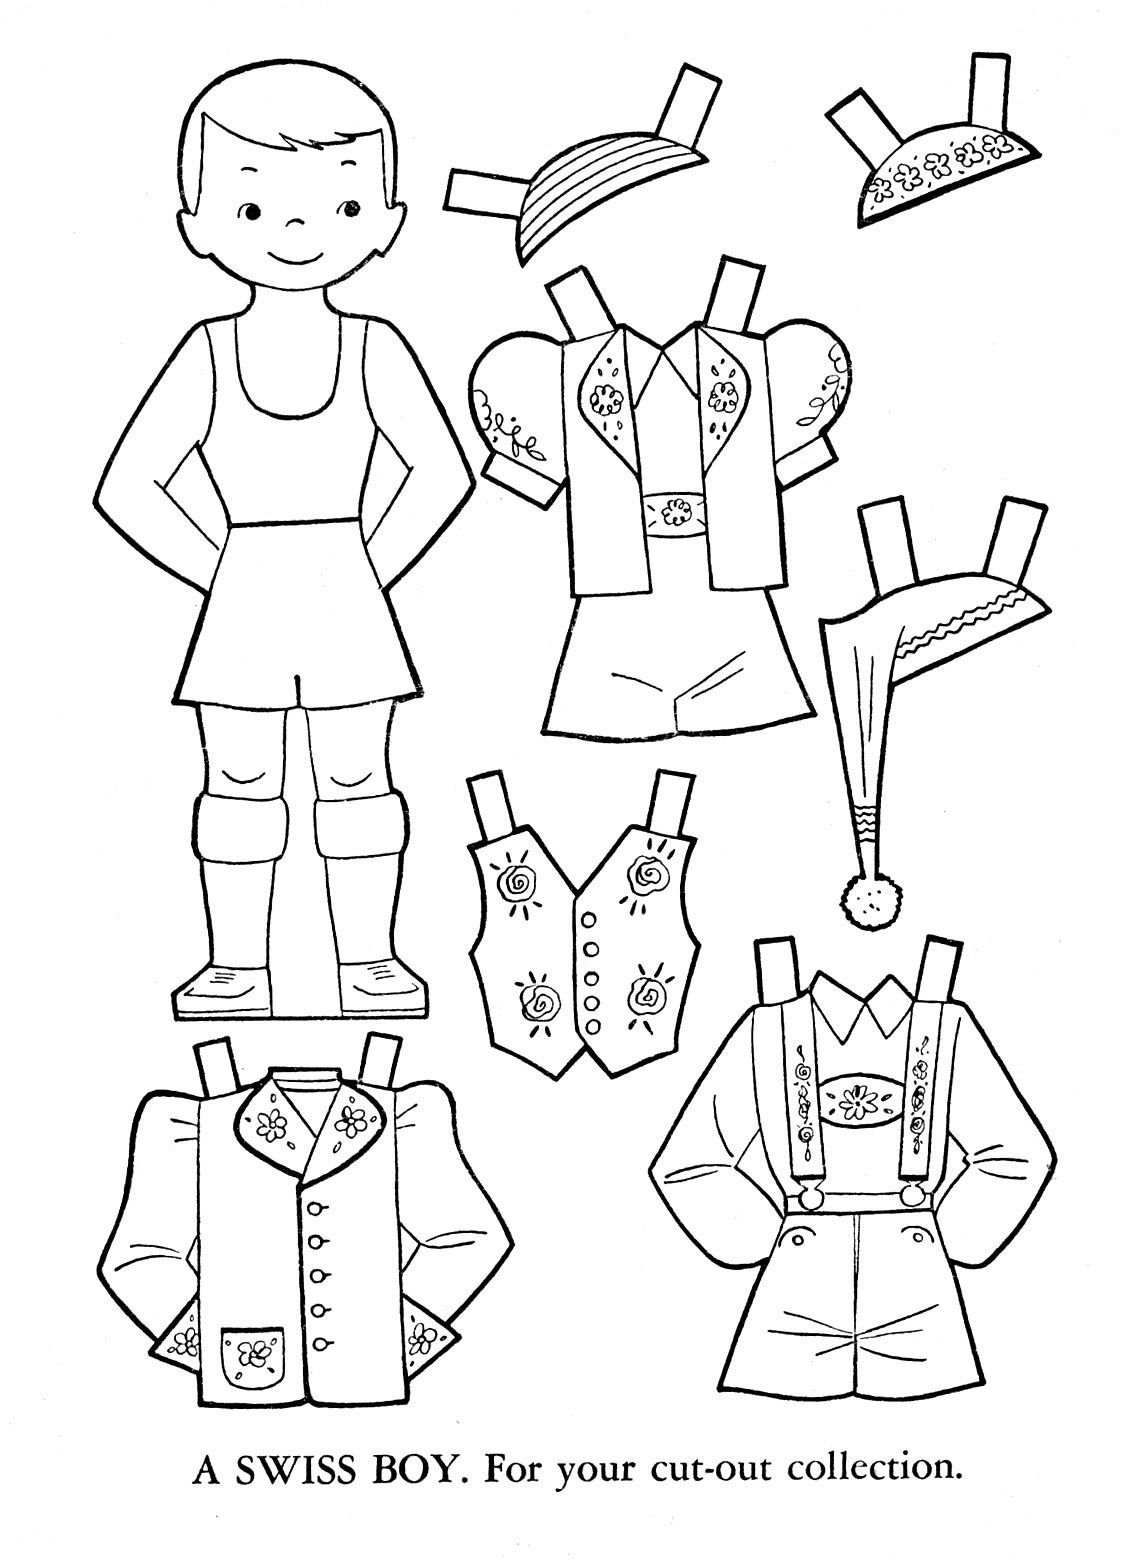 Outlines of dress up dolls different